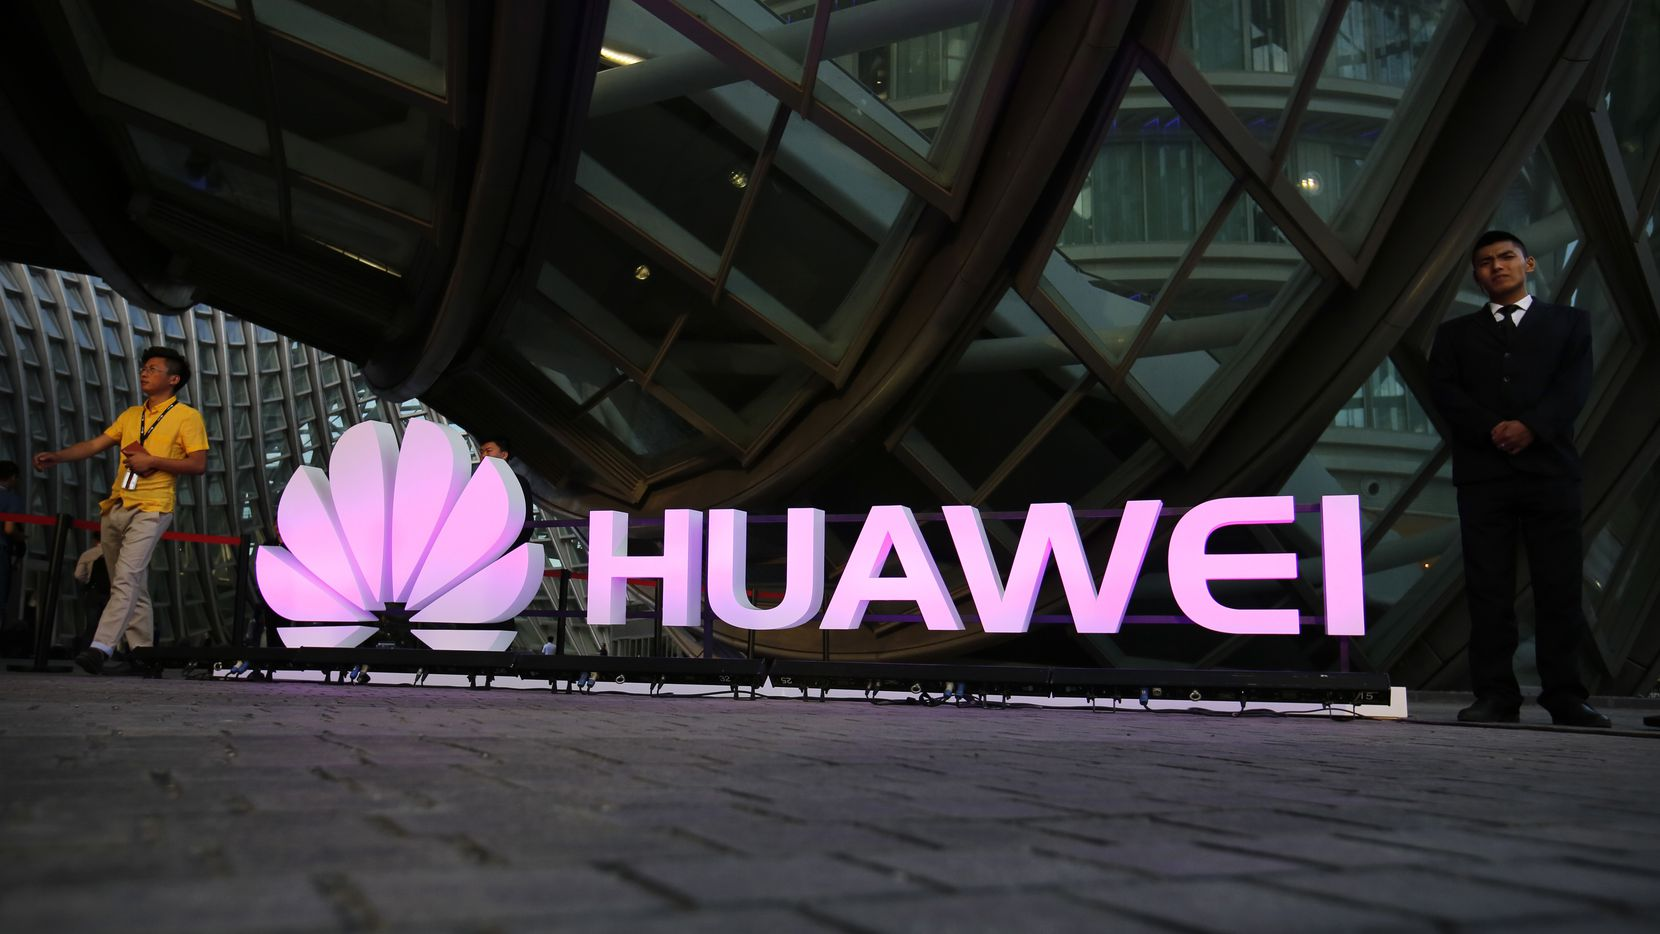 People walk past an illuminated logo for Huawei at a launch event for the Huawei MateBook in Beijing, Thursday, May 26, 2016. Chinese tech company Huawei officially launched the 2-in-1 notebook computer on Thursday, which aims to compete against devices such as the Microsoft Surface and iPad Pro. (AP Photo/Mark Schiefelbein)